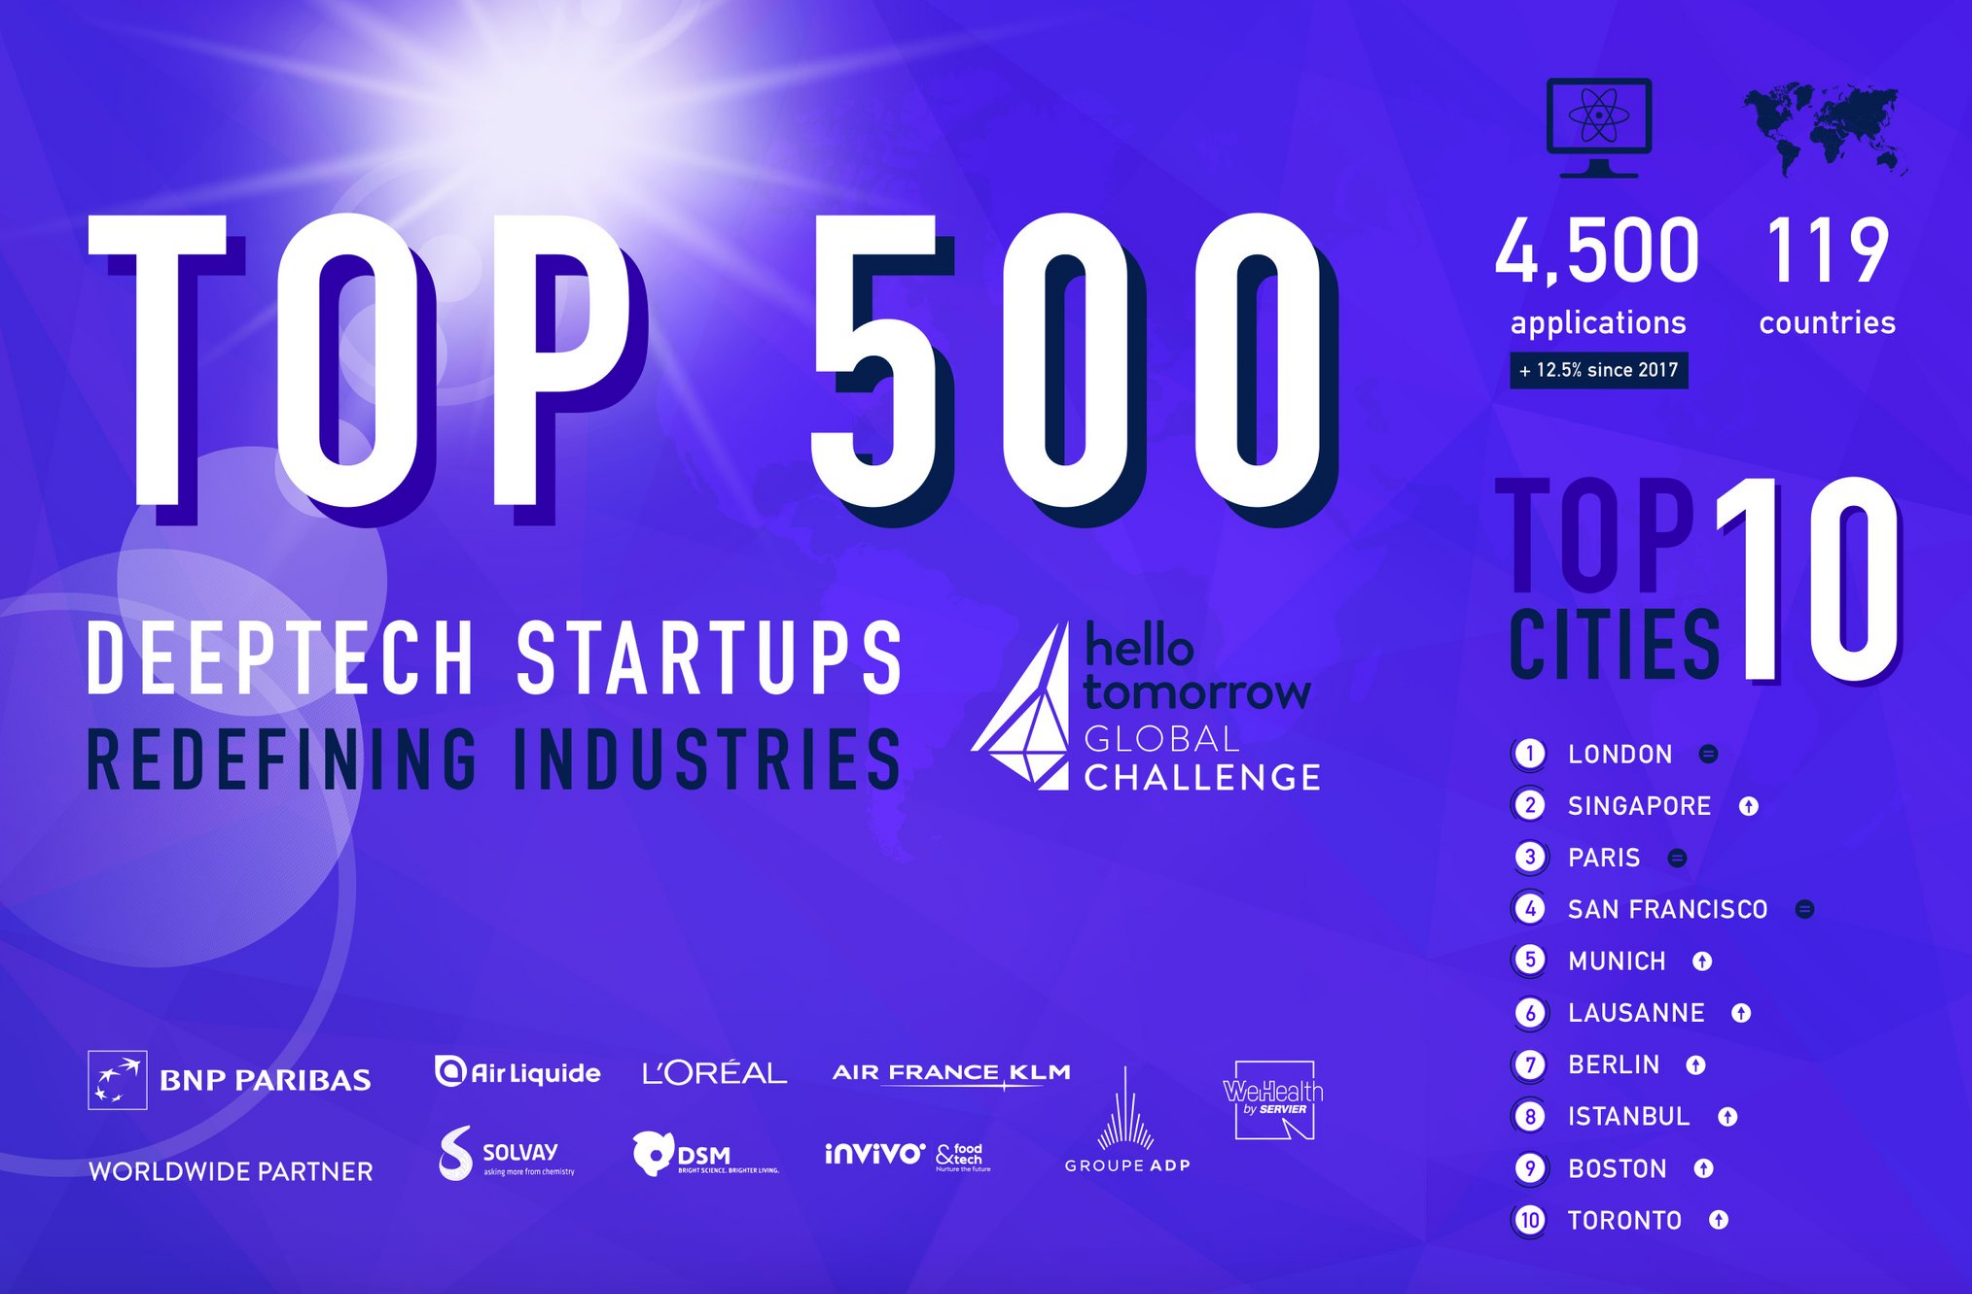 Iyris Team Among the Top 500 deeptech startups - 30/10/18Iyris Solar have been selected as one of Hello Tomorrow Top 500 deeptech startups from over 4,500 applications worldwide. Well Done!